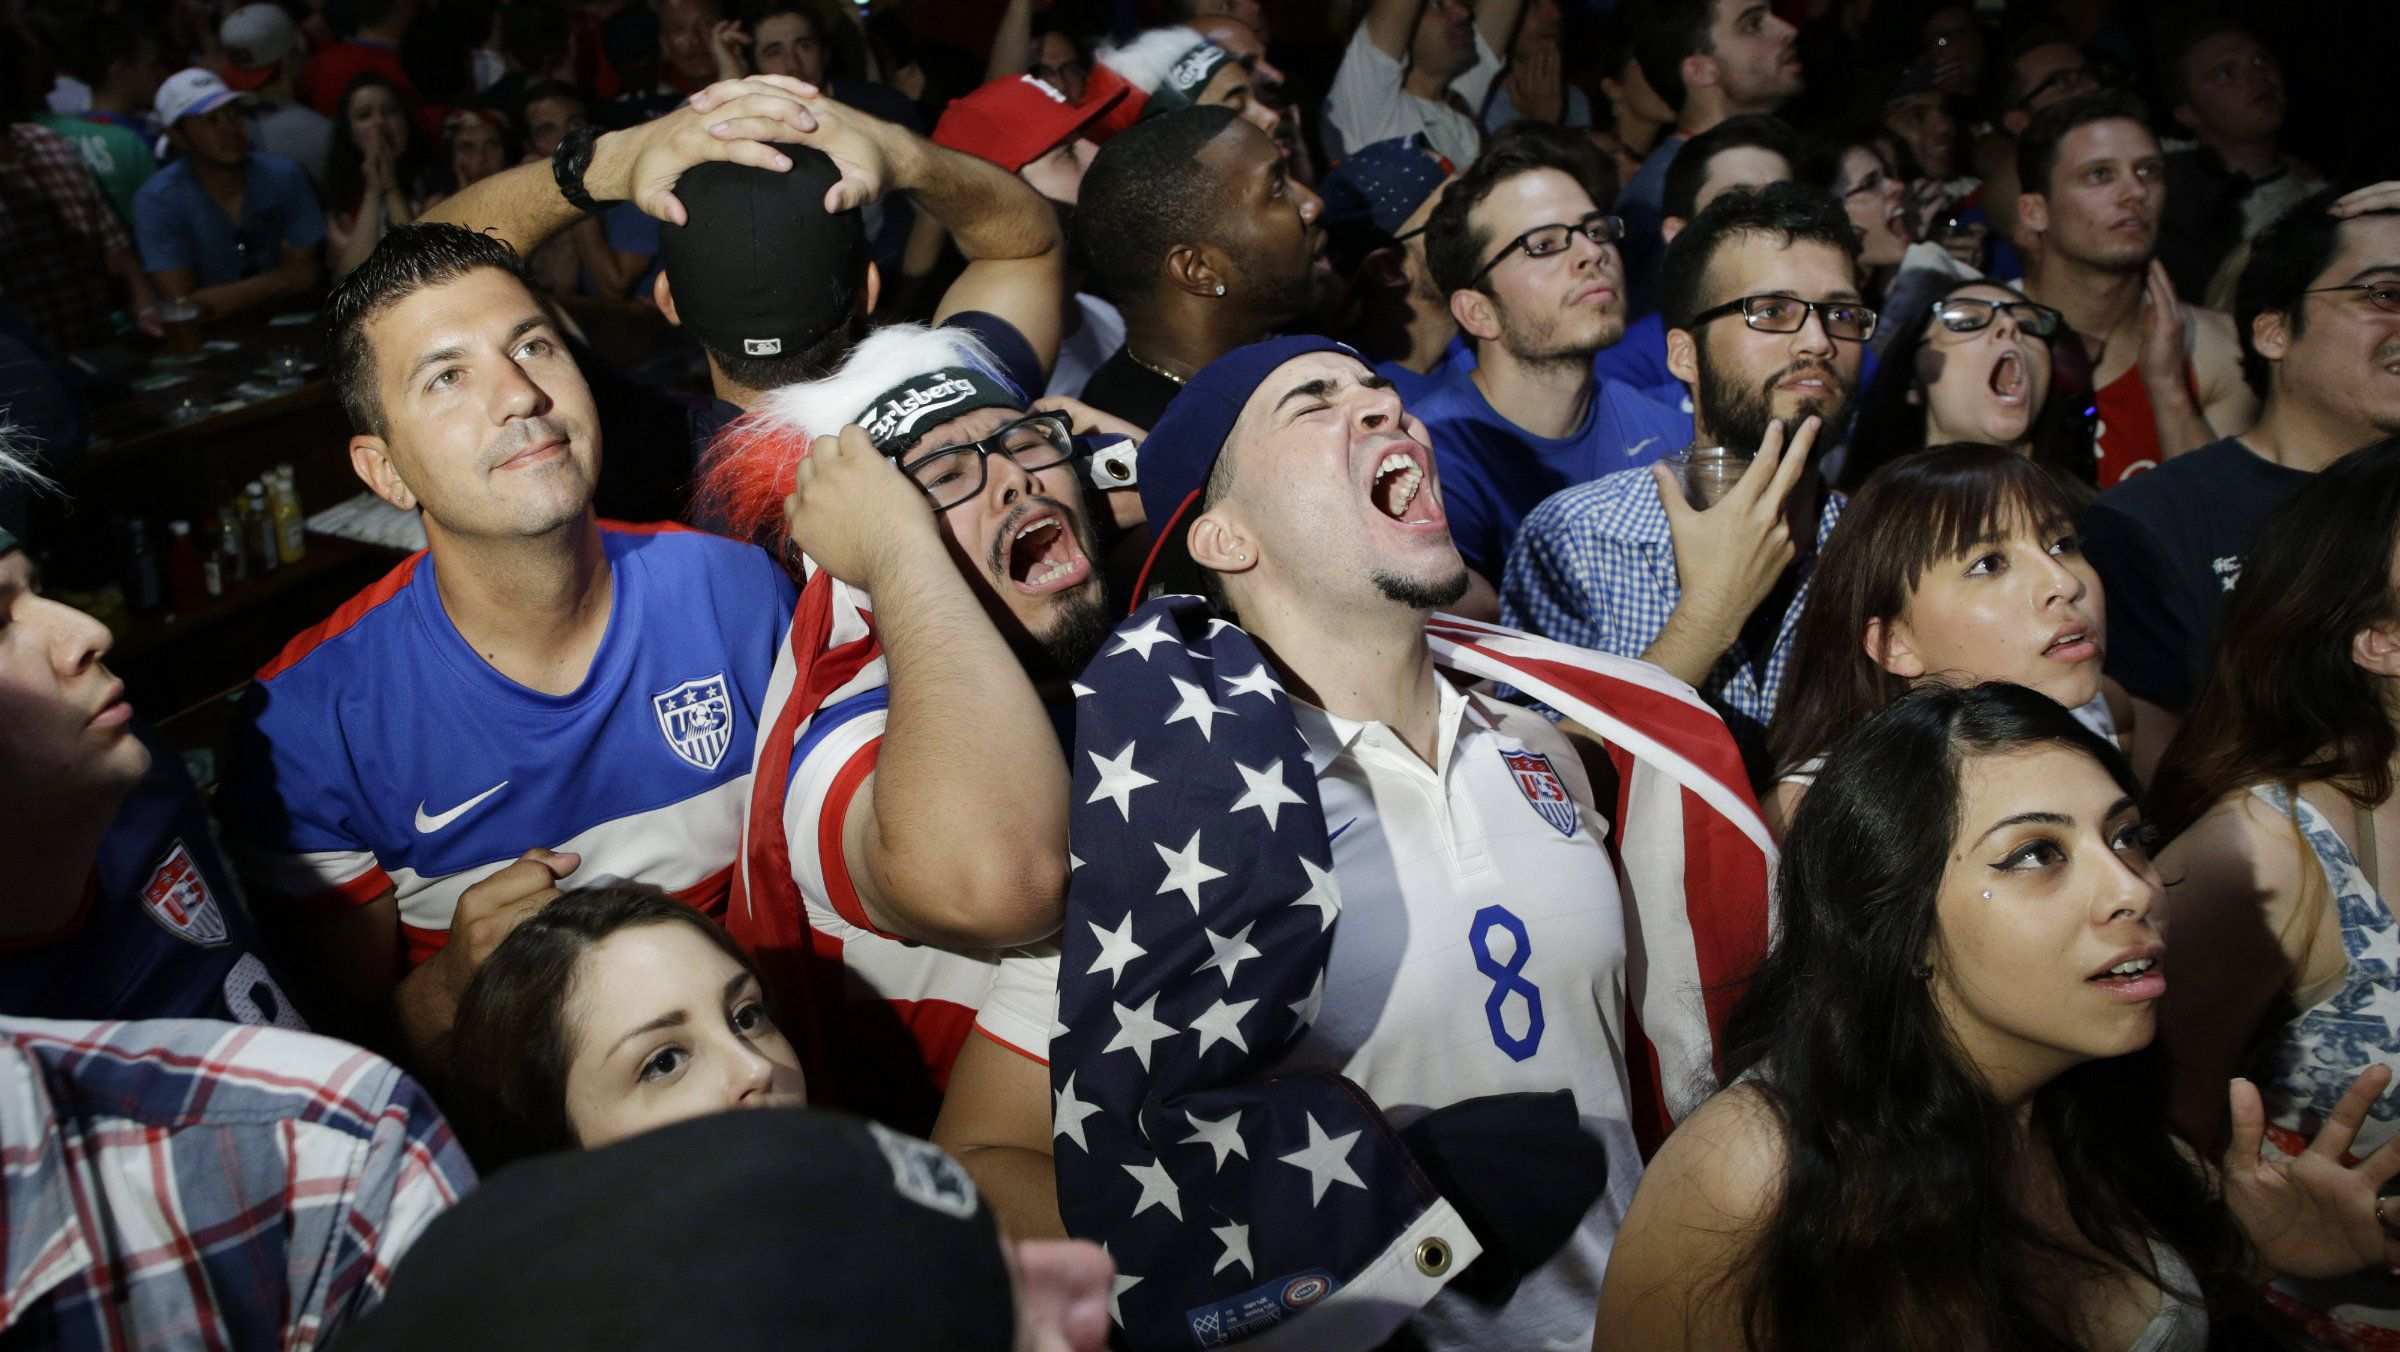 U.S. soccer fans react as they watch their team miss a goal against Belgium during a watch party at the Crown & Anchor British Pub Tuesday, July 1, 2014 in Las Vegas.